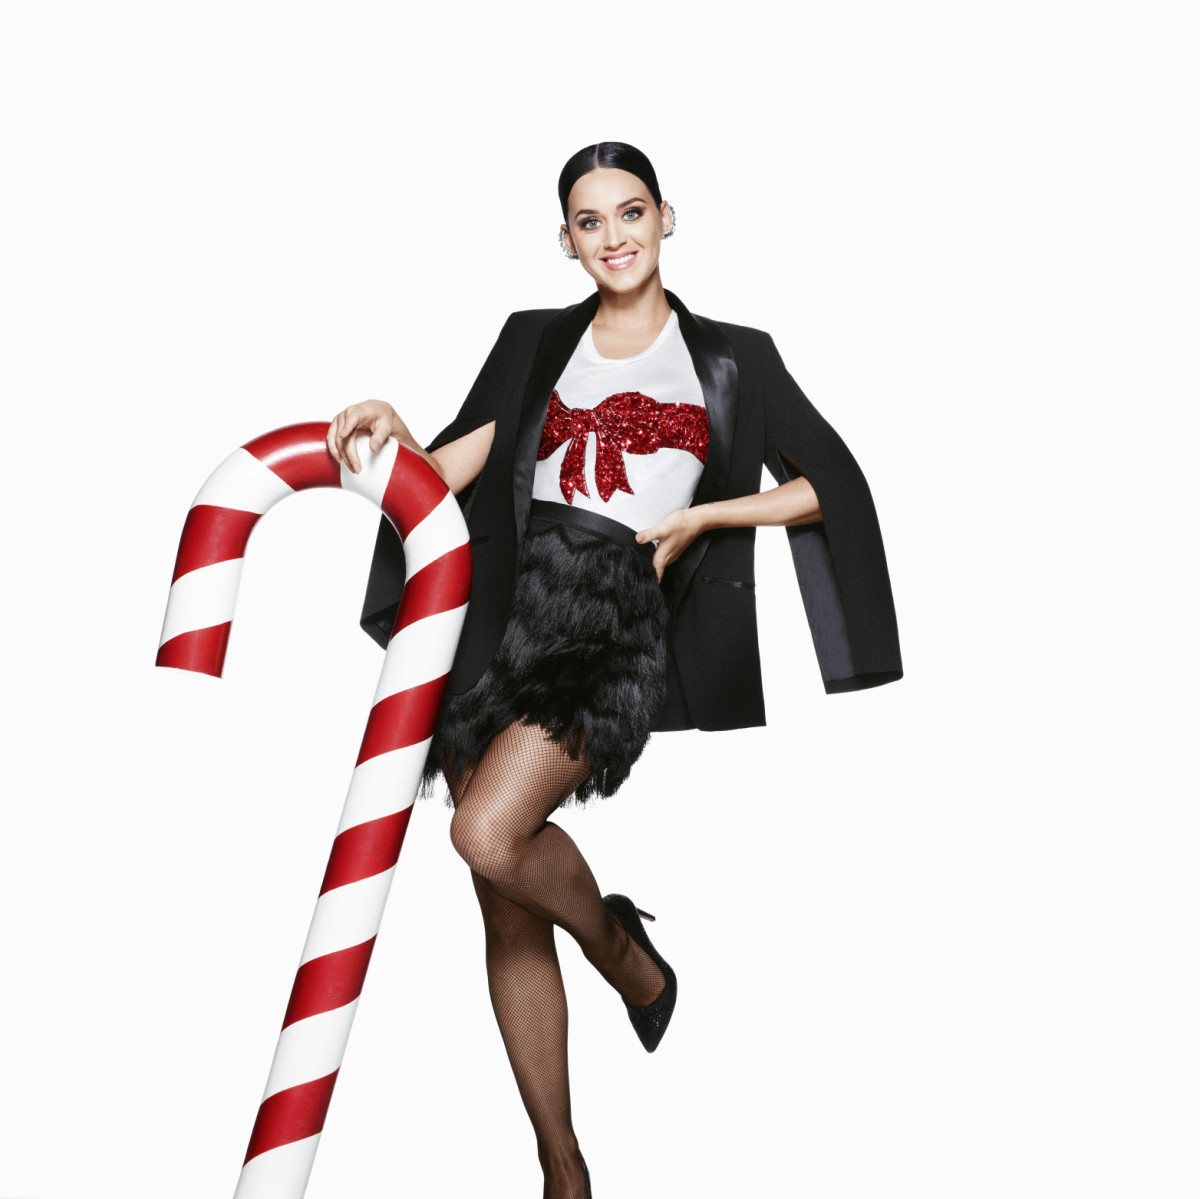 Katy Perry in the H&M holiday campaign. Photo: H&M